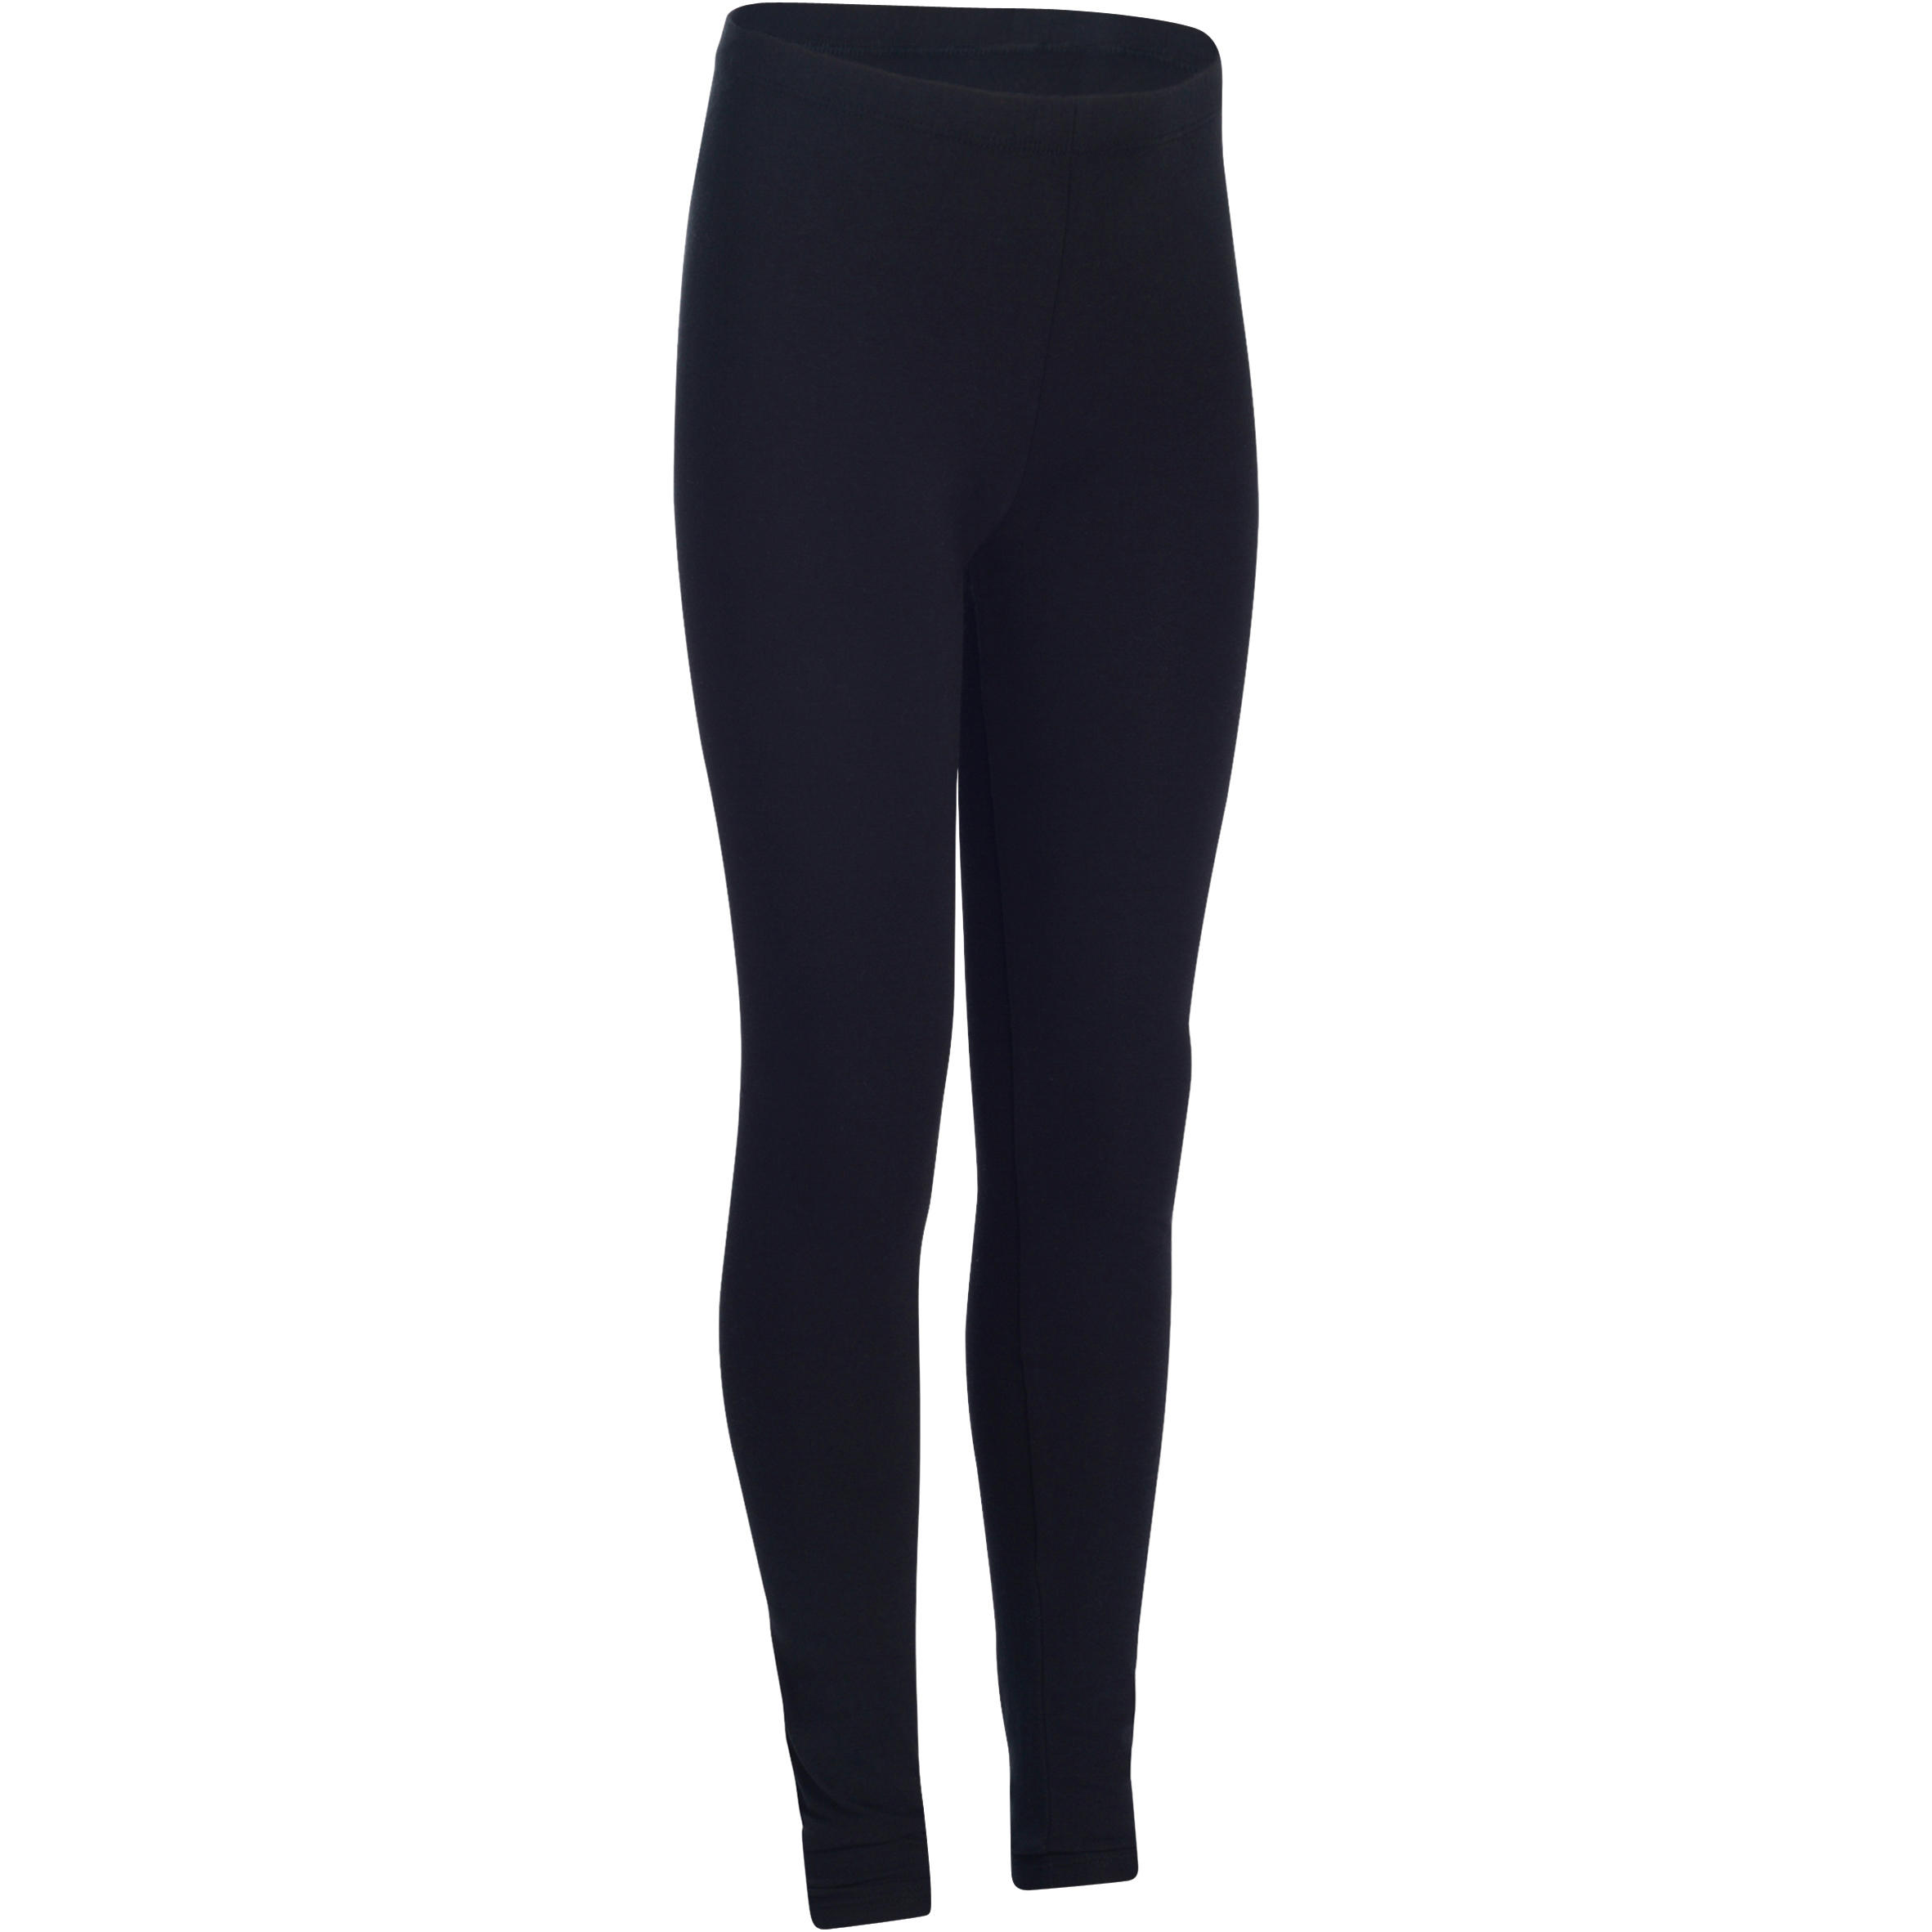 Girls' Gym Leggings - Hitam